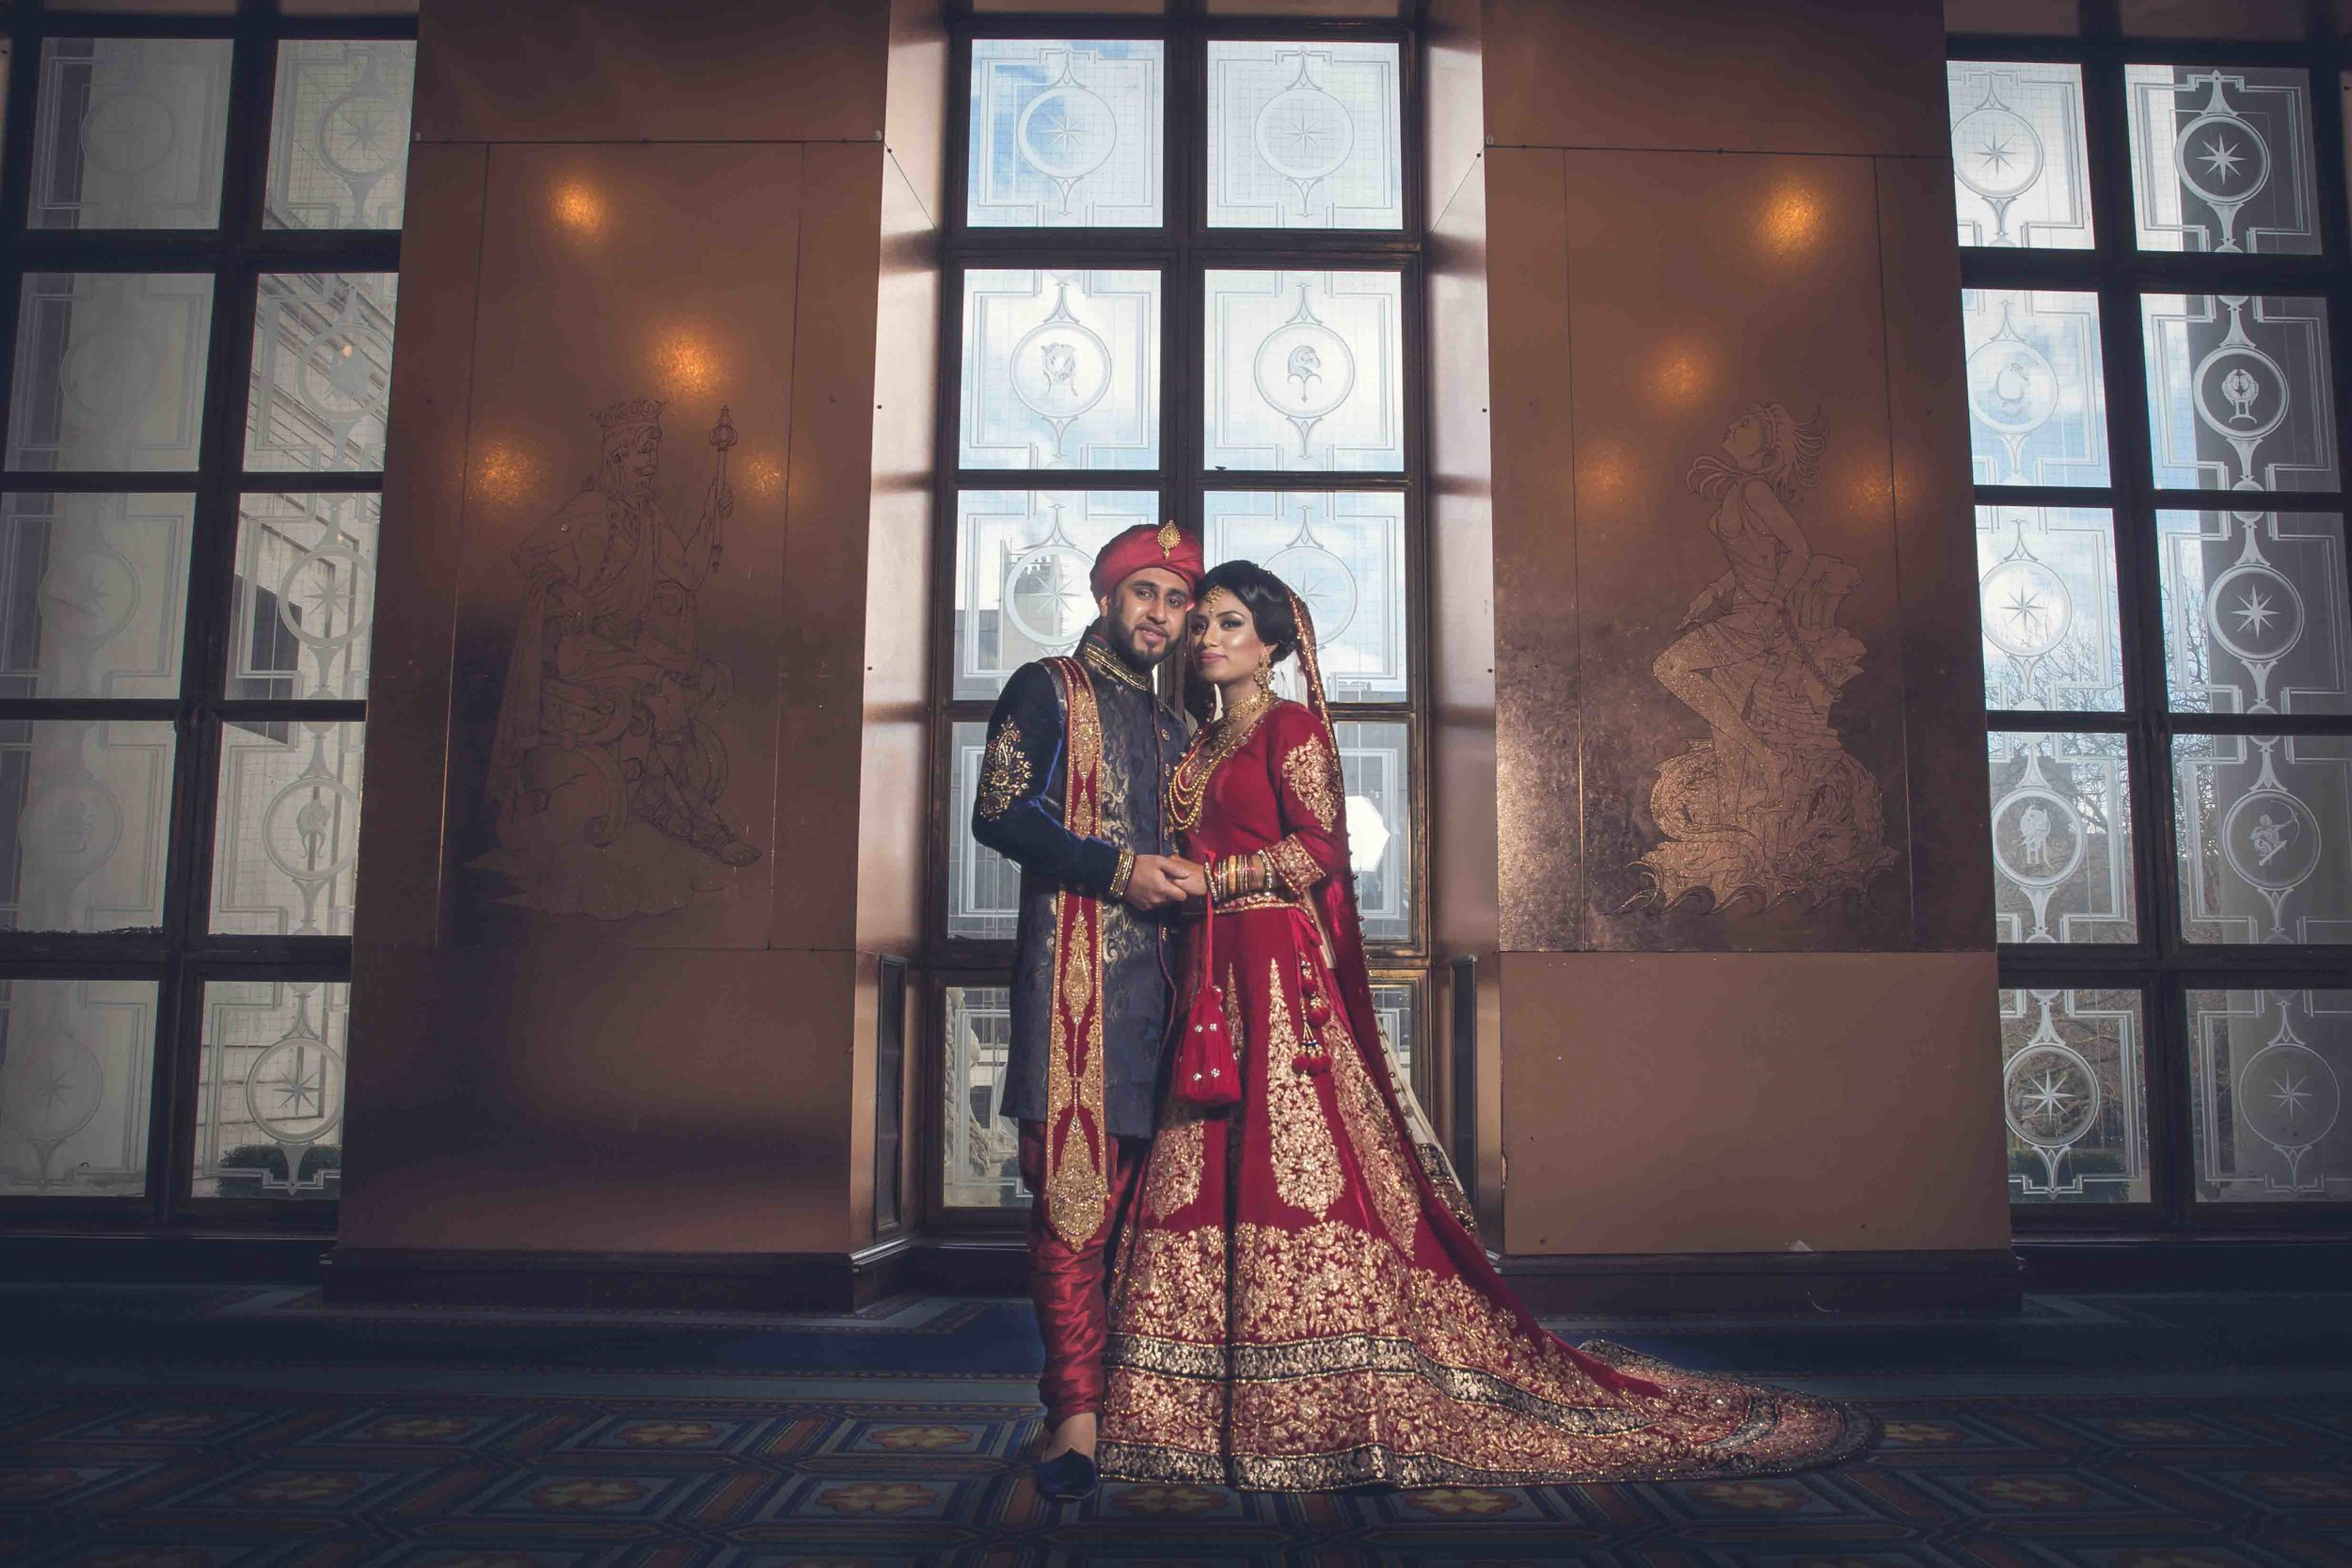 Asian Wedding Photographer Opu Sultan Photography portsmouth Scotland Edinburgh Glasgow London Manchester Liverpool Birmingham Wedding Photos prewed shoot Luko & Rujina Blog-11.jpg